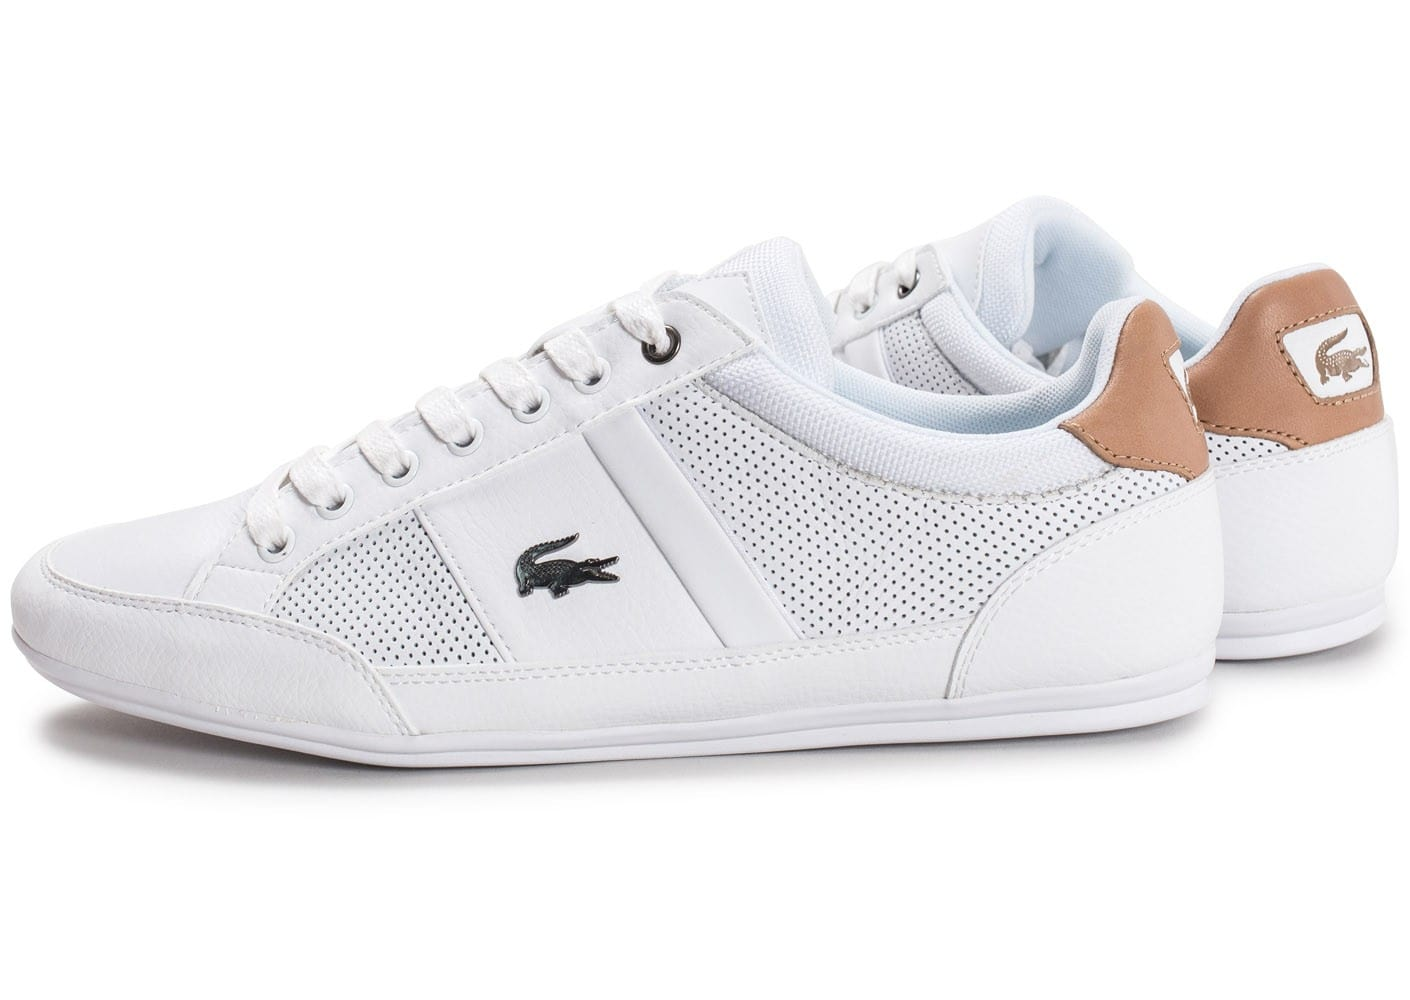 Chaussures Lacoste blanches homme UlDpS0E7J